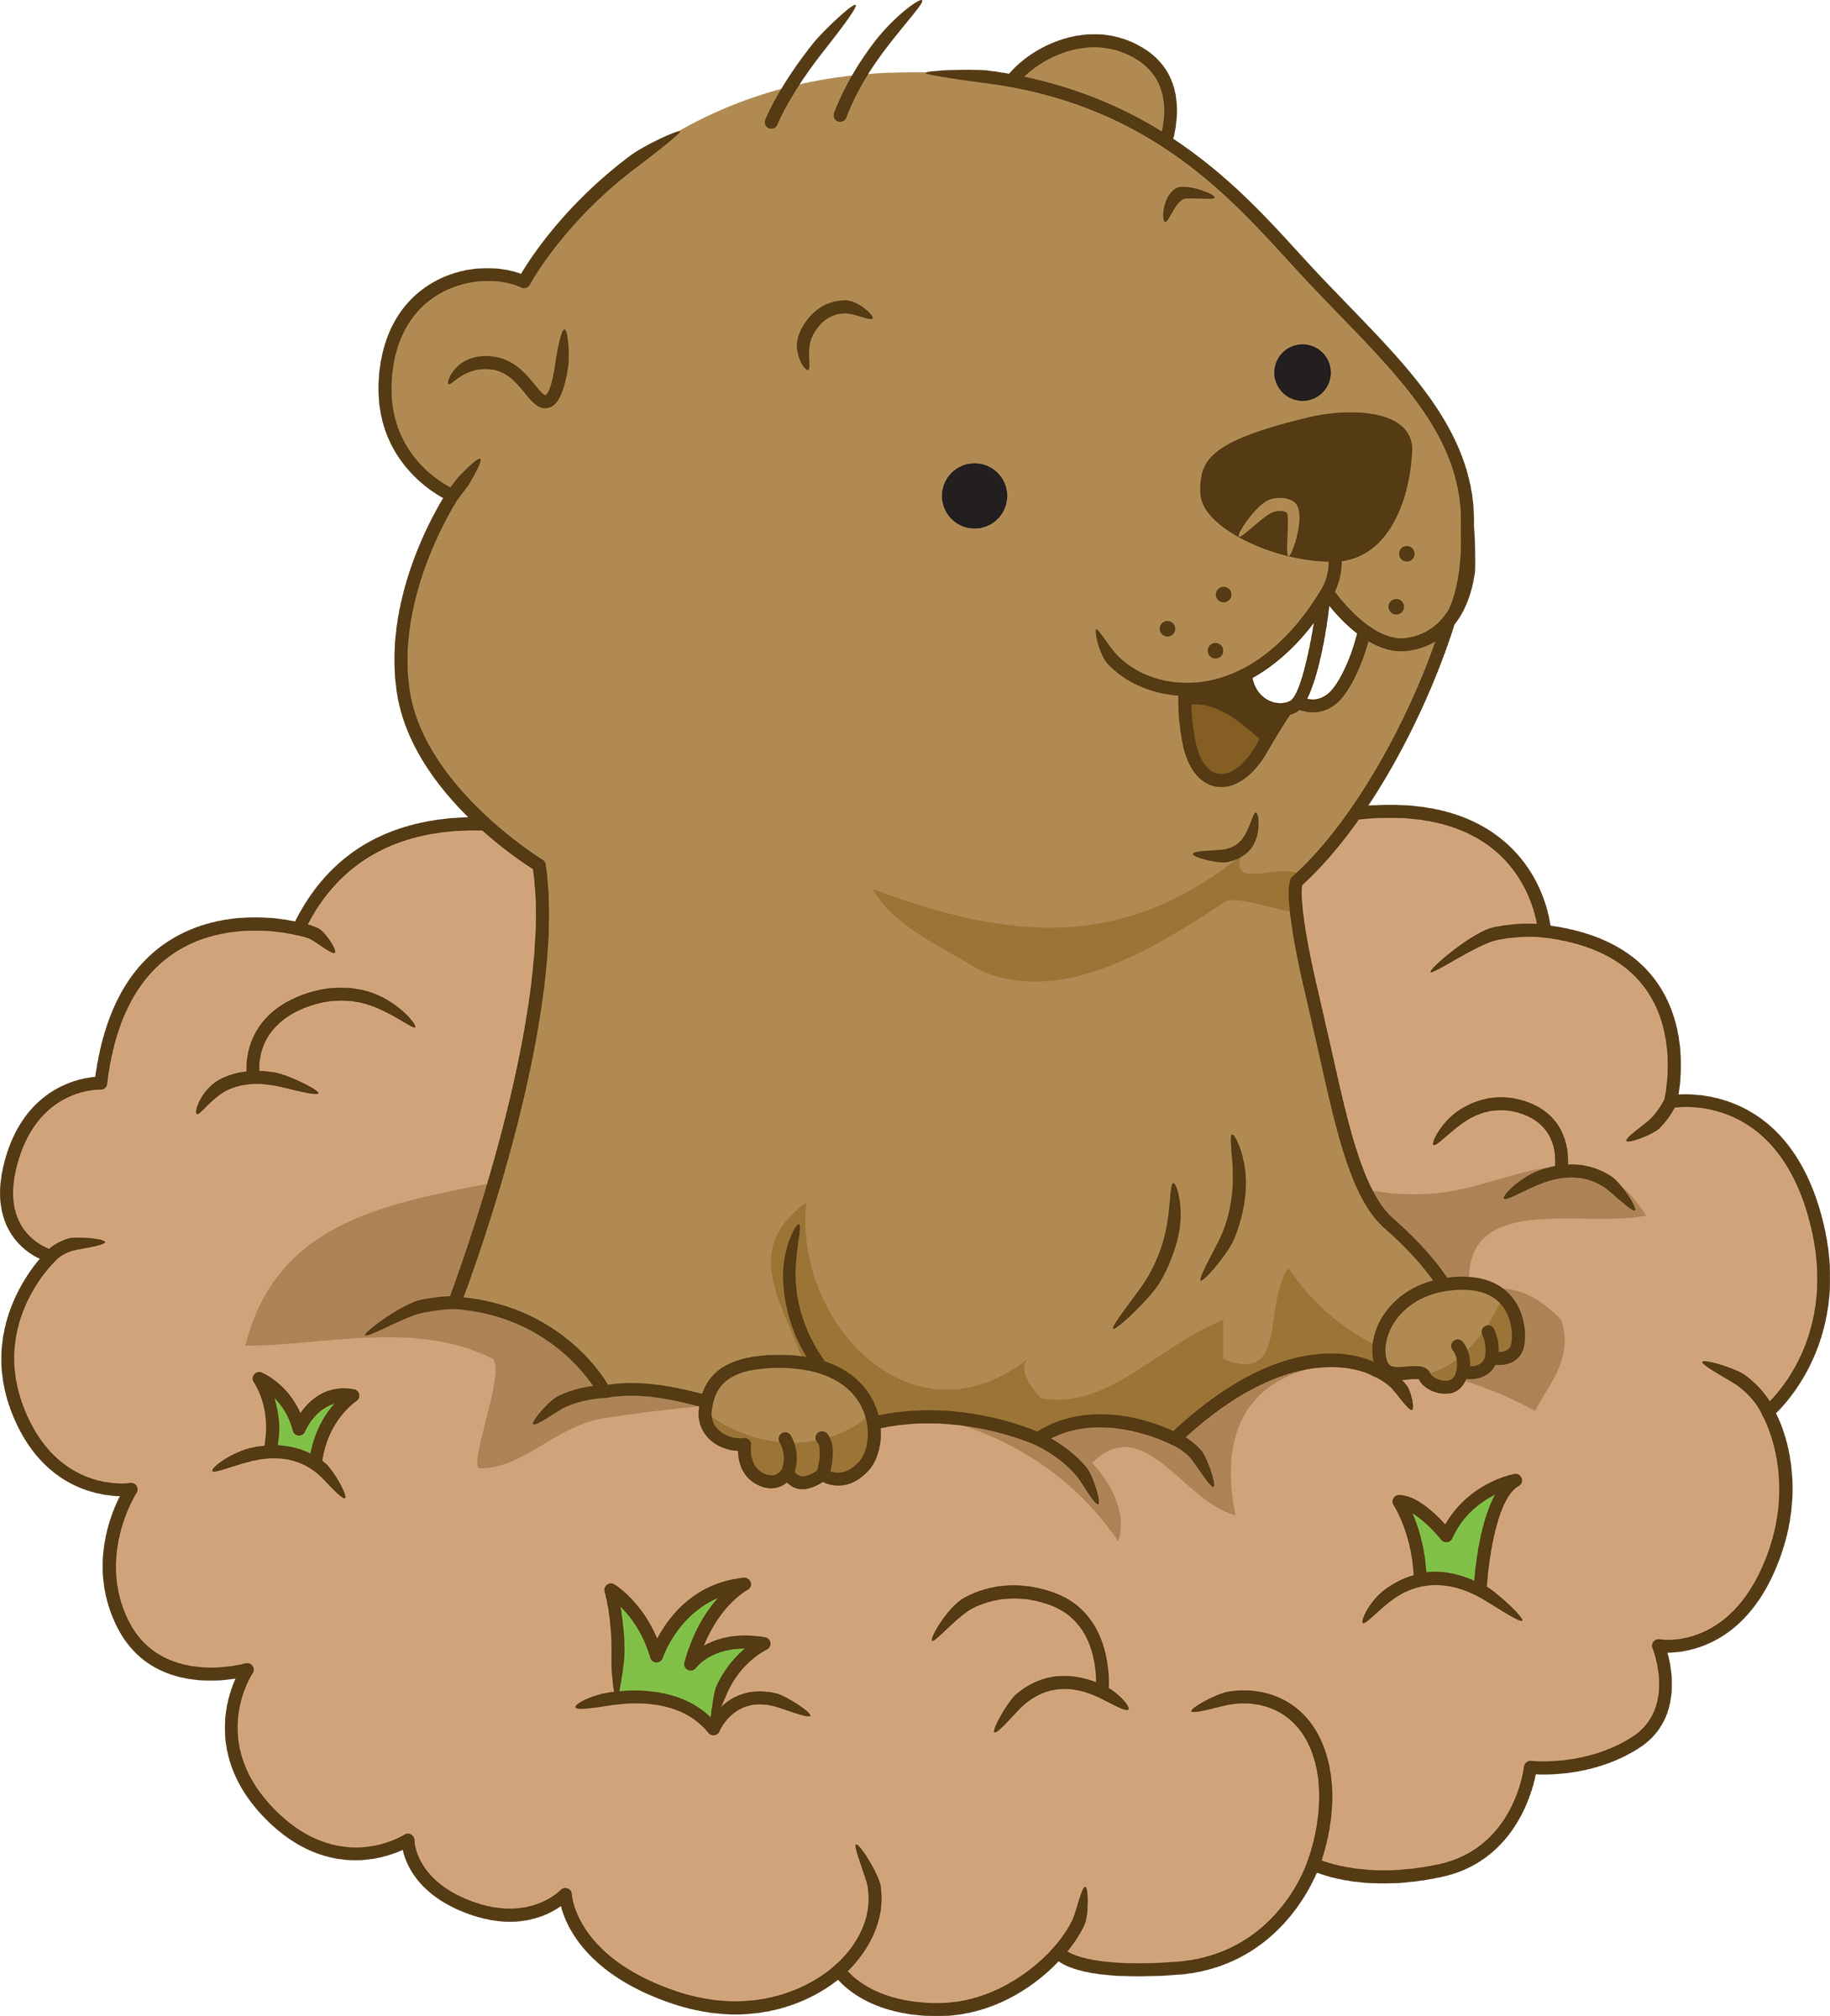 Woodchuck clipart image svg free download Free Groundhog Cliparts, Download Free Clip Art, Free Clip ... svg free download